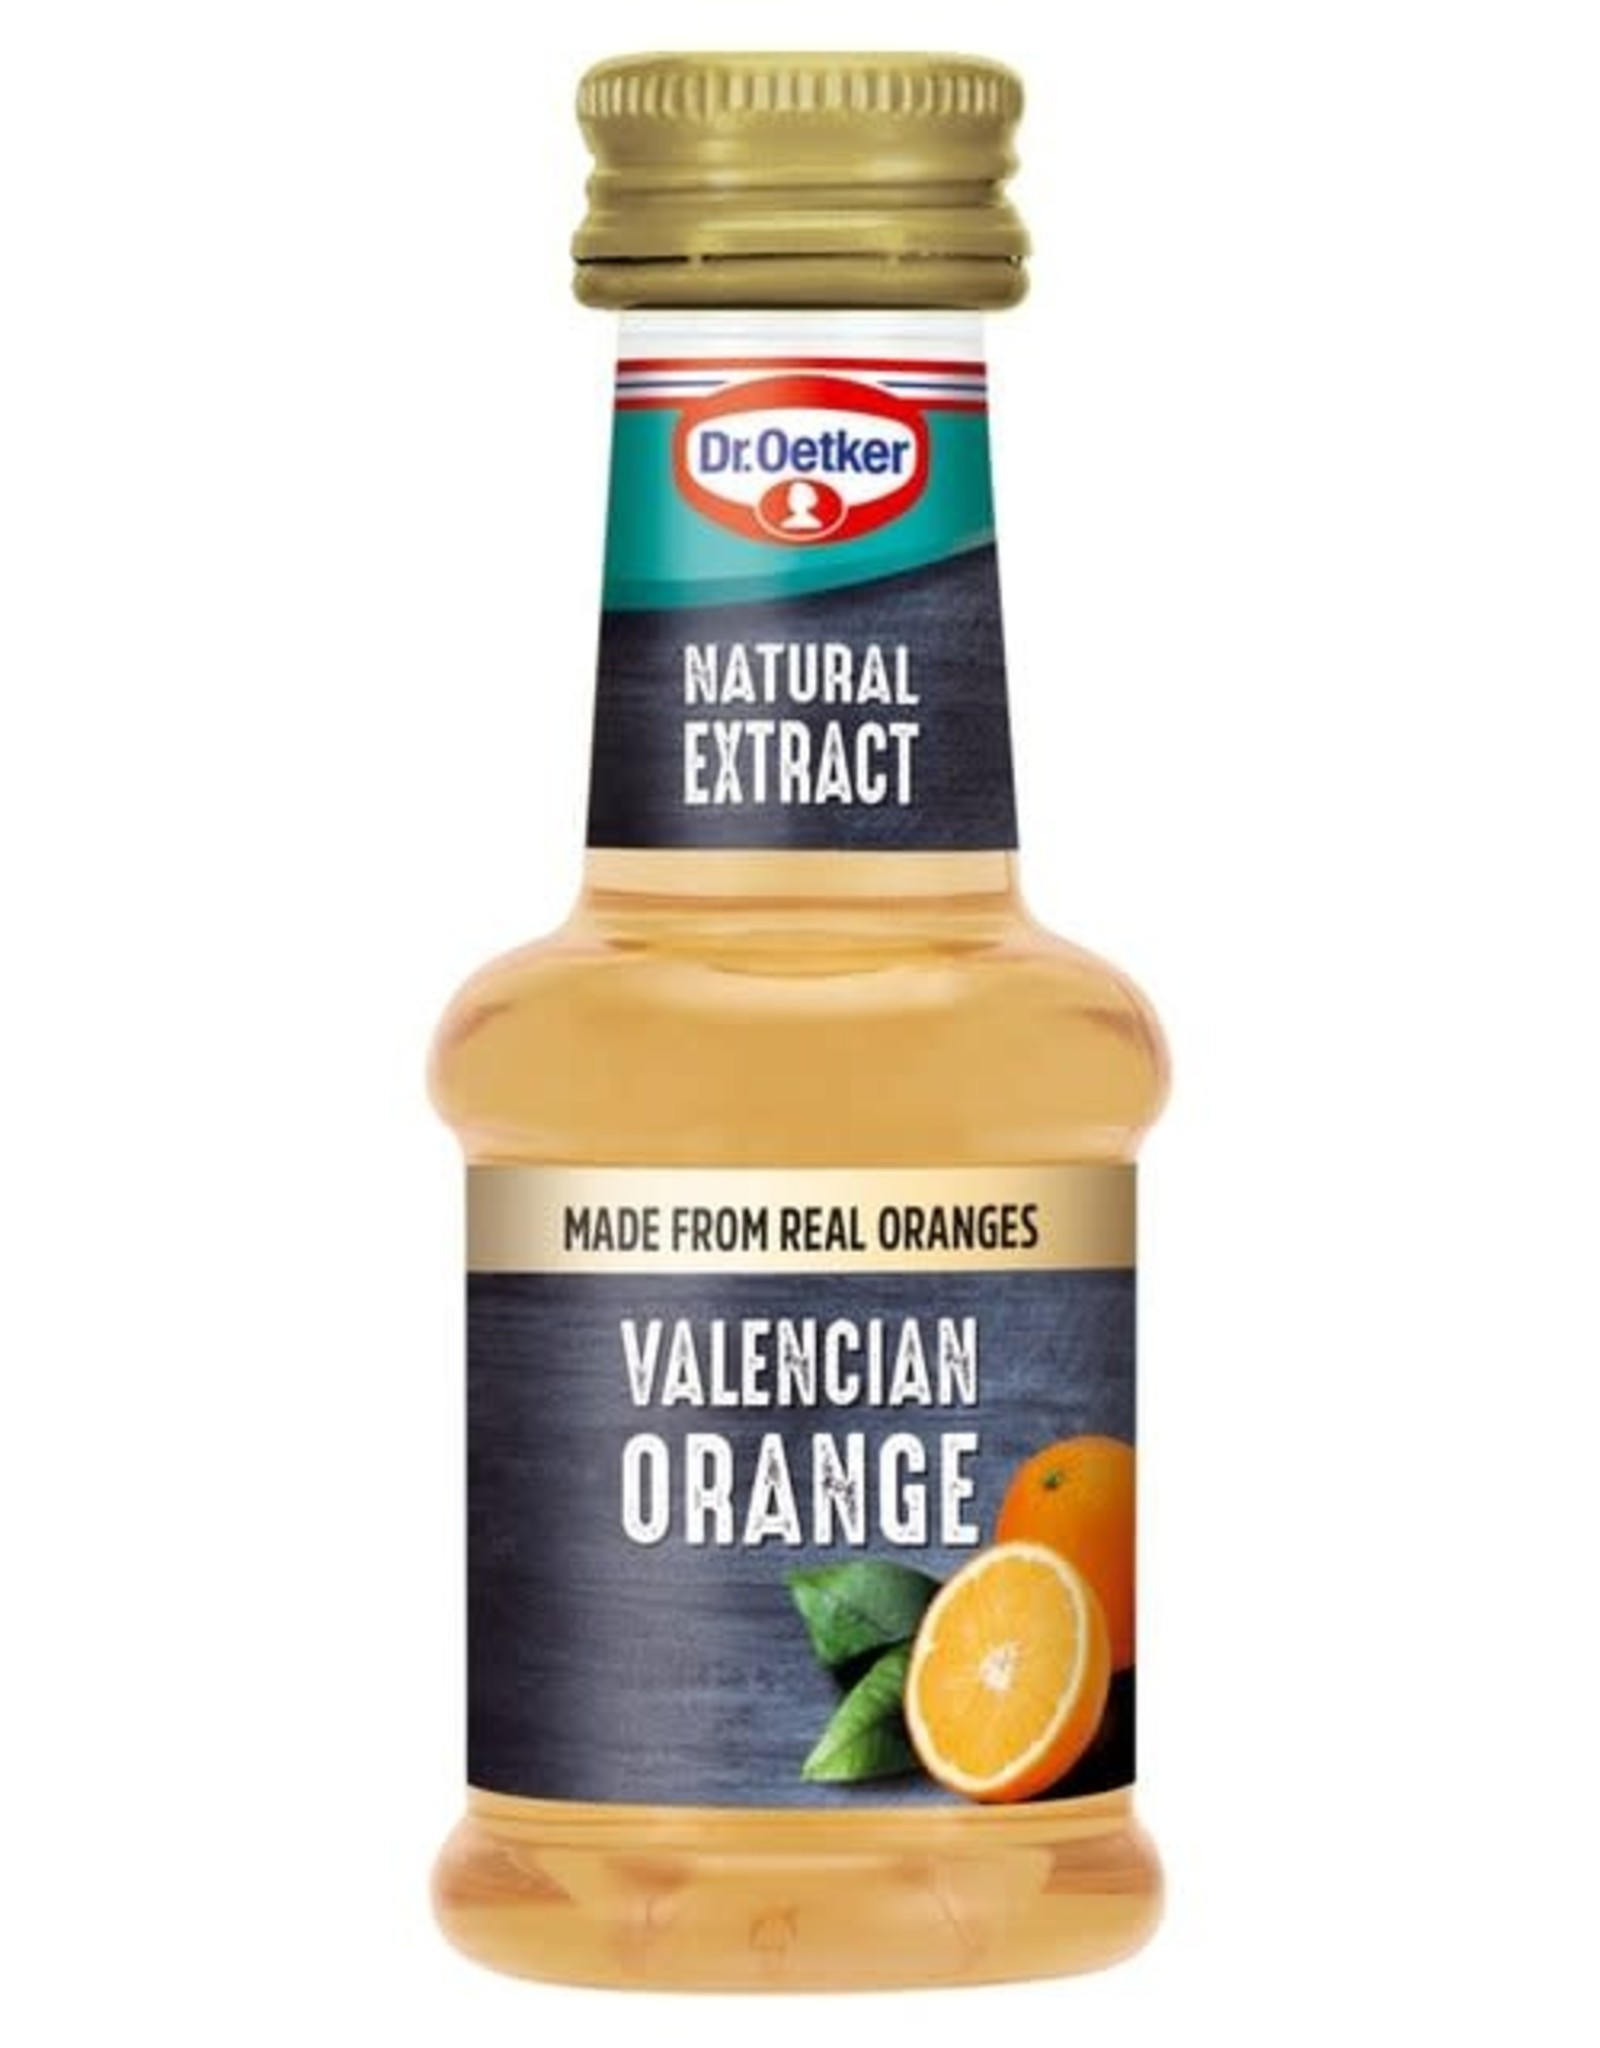 Dr Oetker Copy of Dr Oetker Natural American Peppermint Extract 35ml